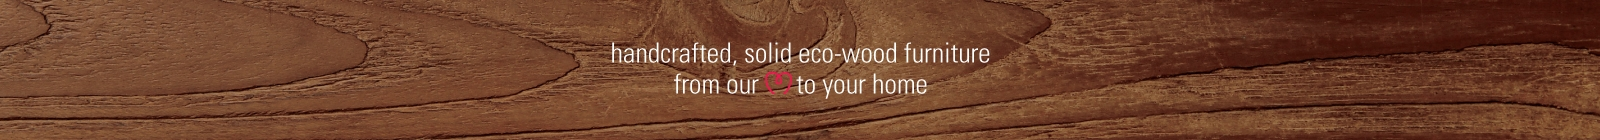 handcrafted, solid eco-wood furniture, from our heart to your home